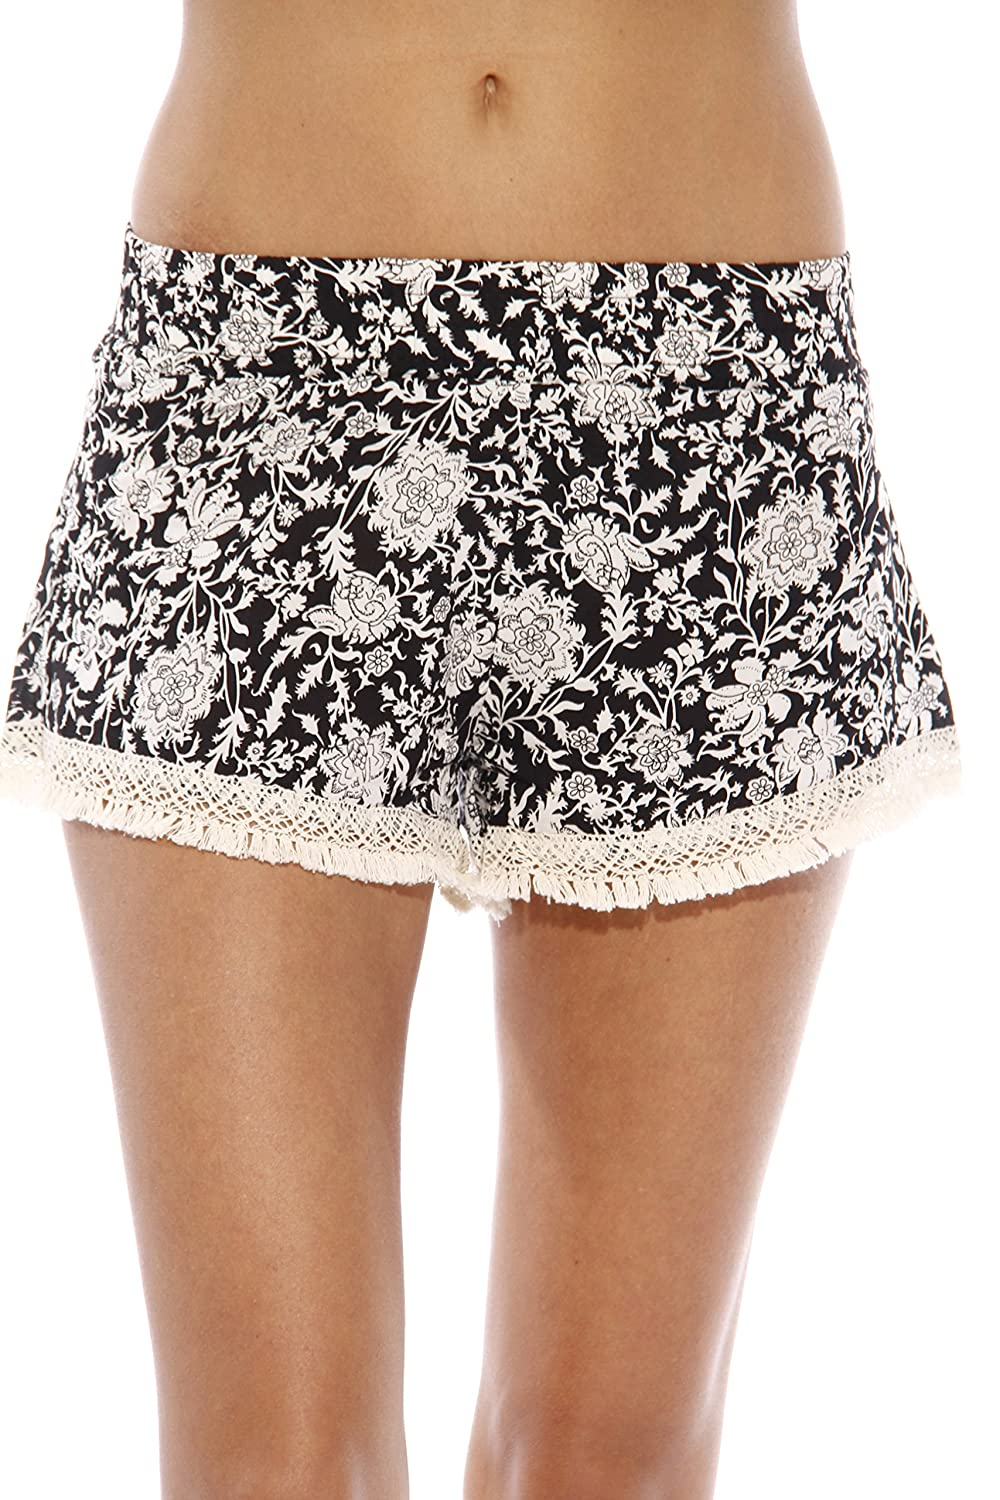 1d86320c872 Just Love High Waisted Women Shorts - Summer Pom Pom Beach Shorts |  Amazon.com